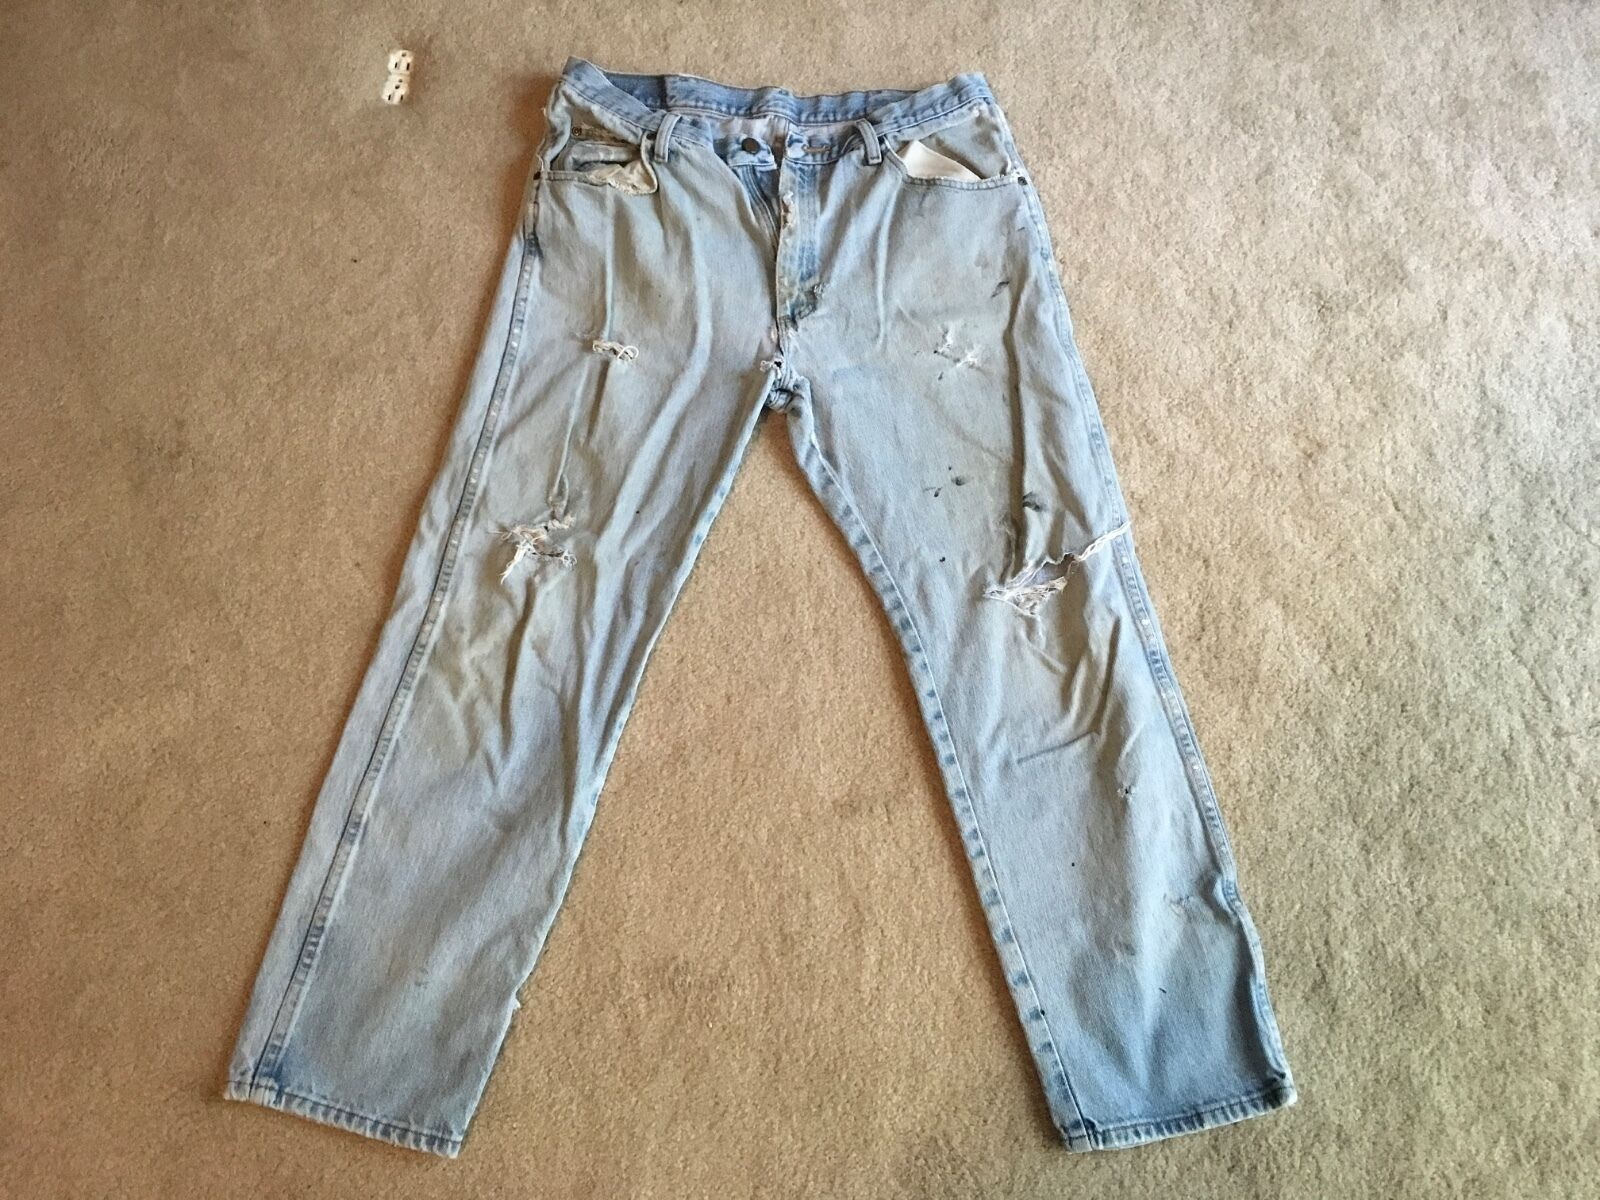 Naturally weathered comfort fit denim jeans 36X30...100% authentic americanna